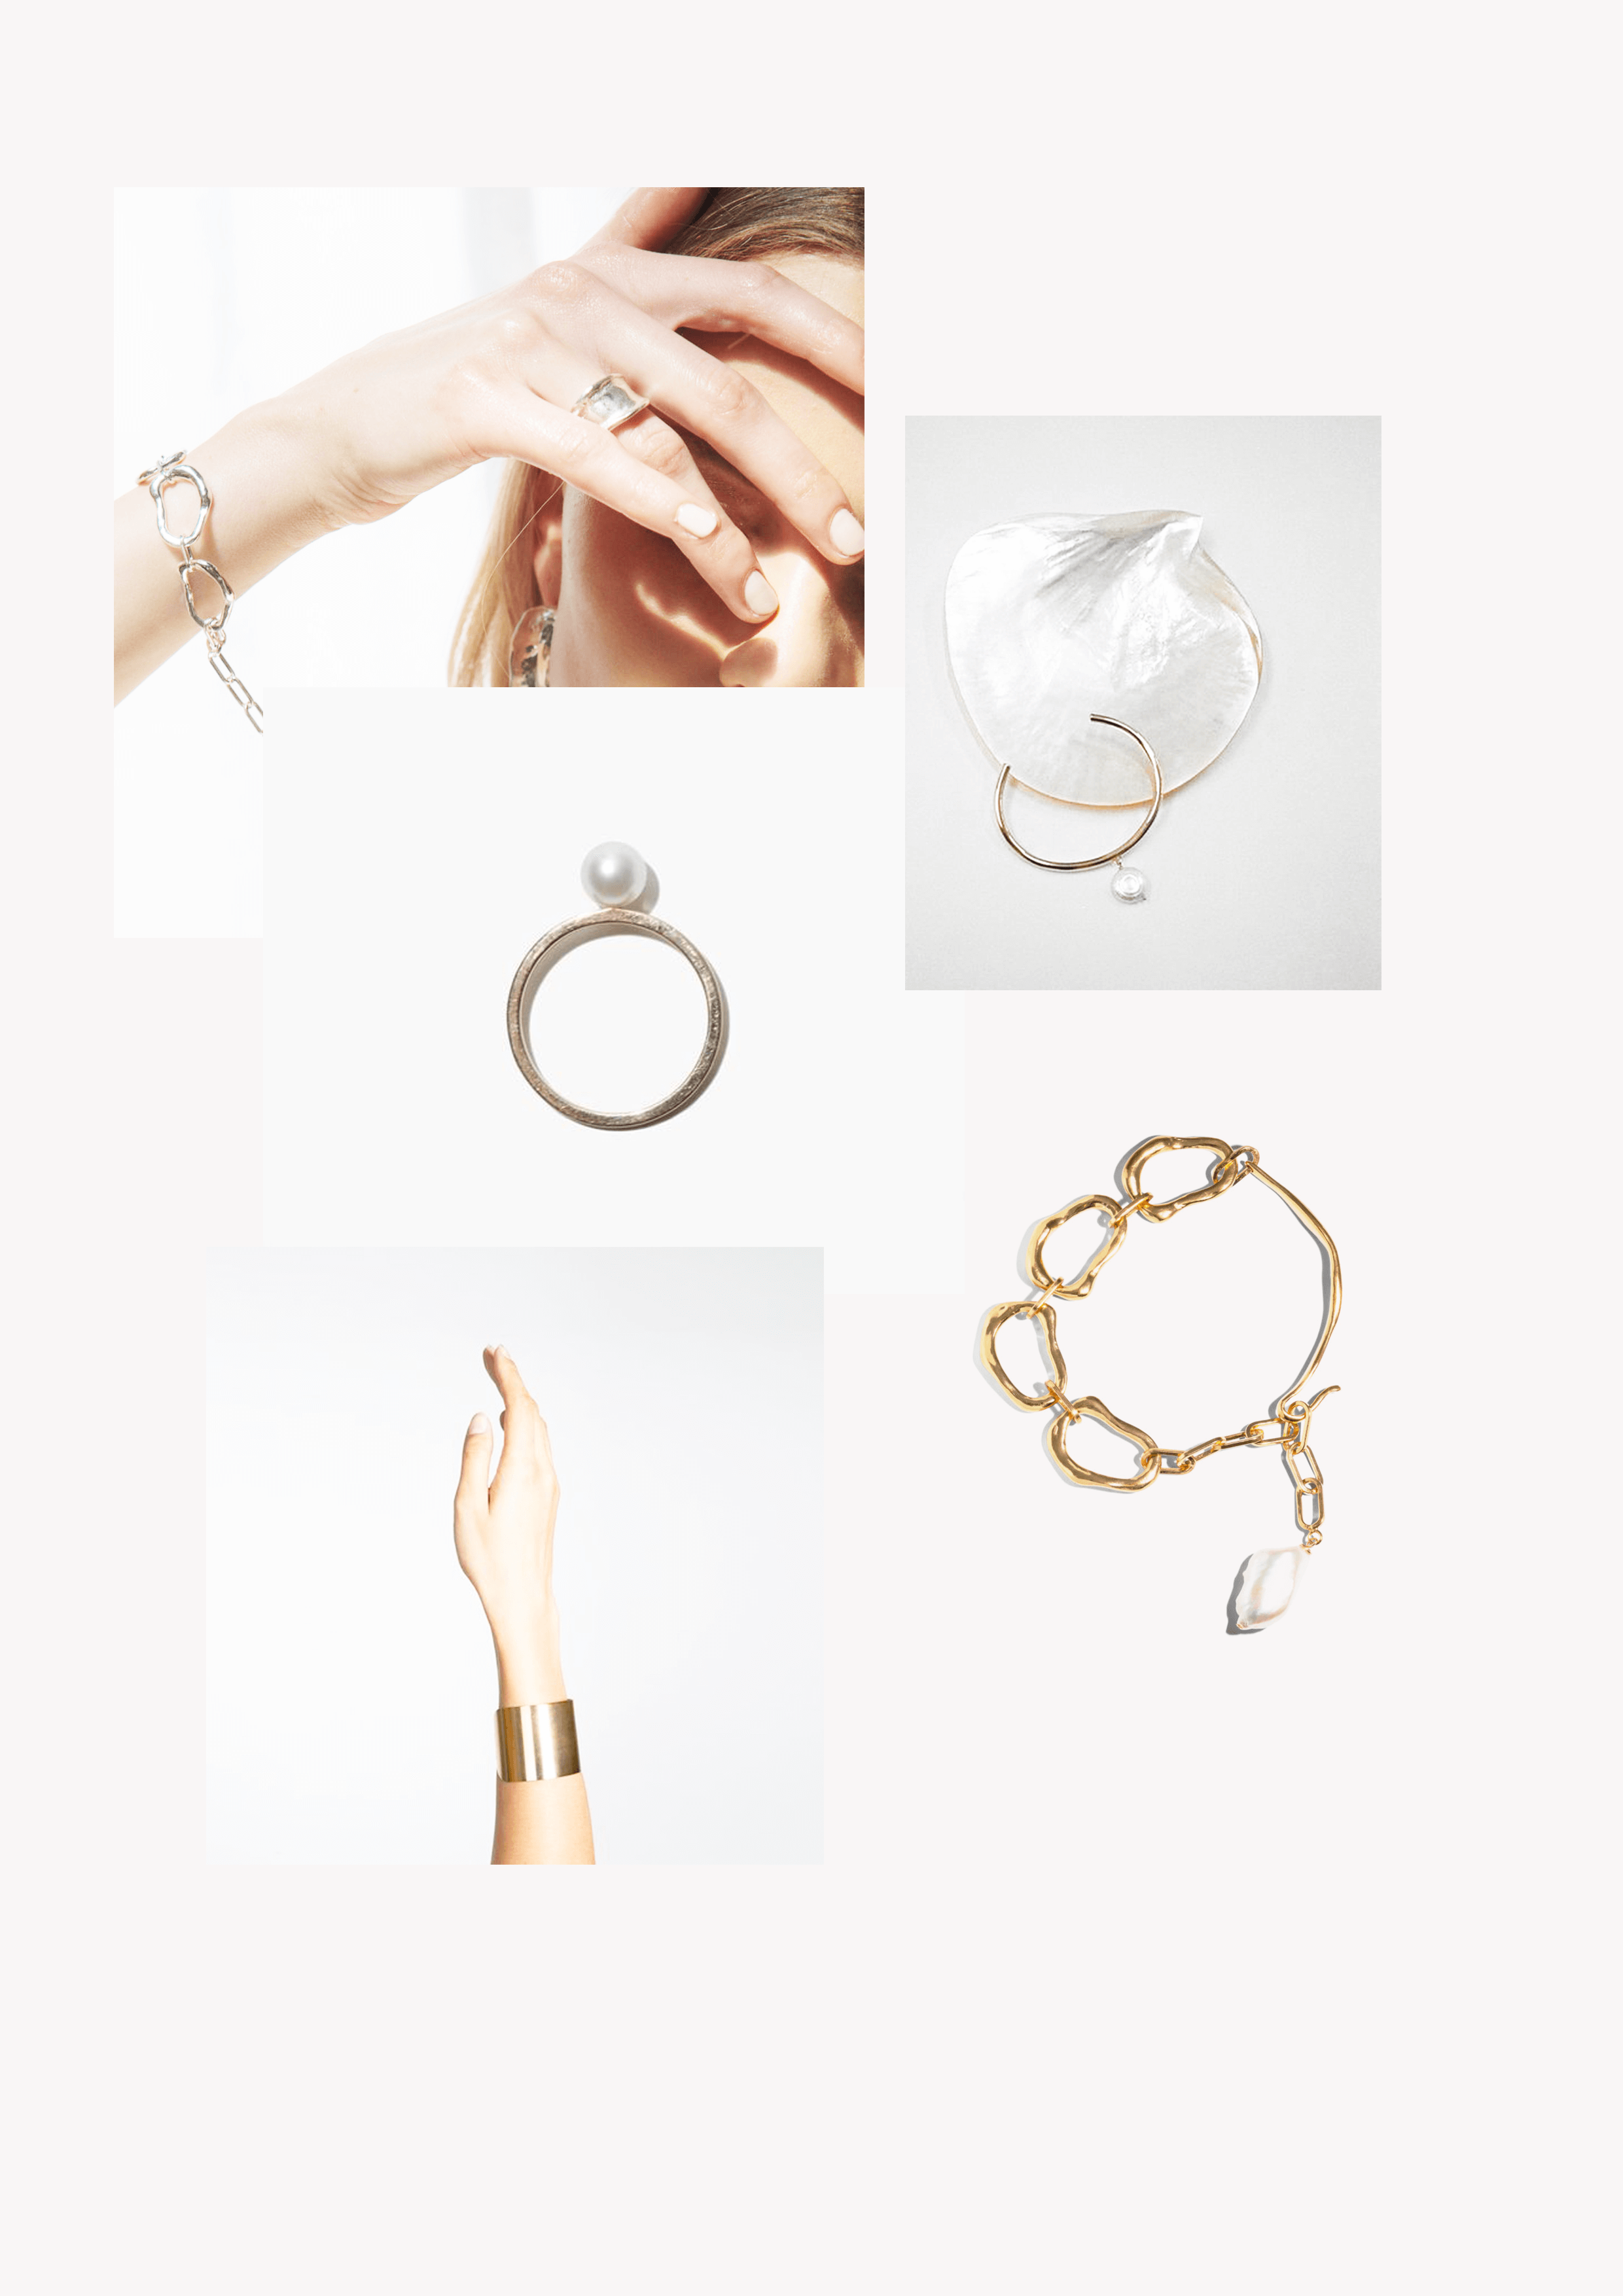 Jewelry Collection Mood Board // Phylleli Design Studio and Blog